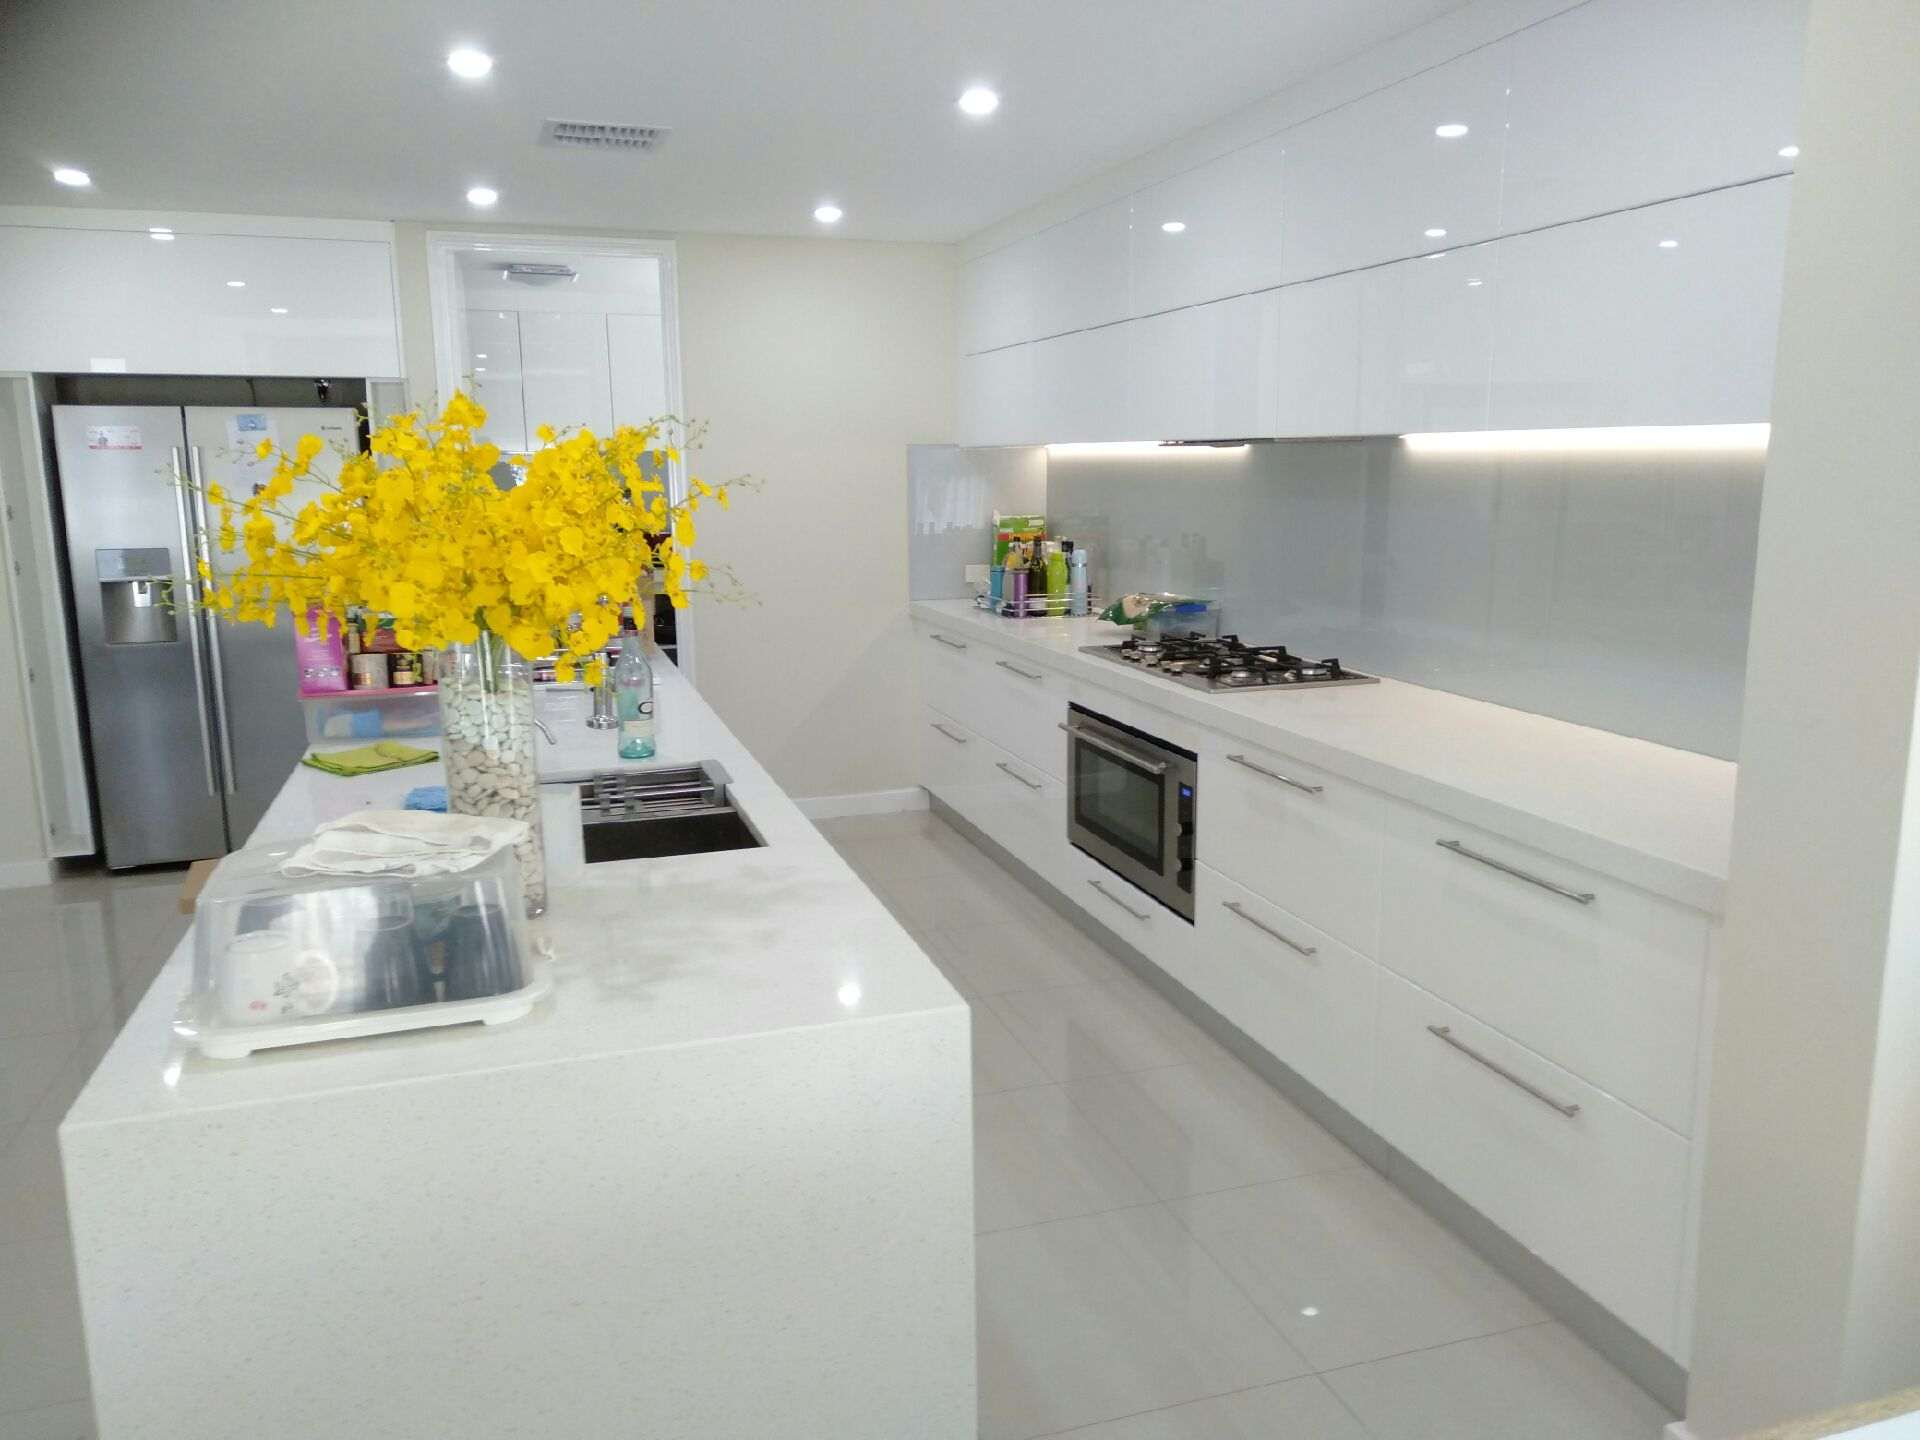 Completed kitchen renovation in Shelley.